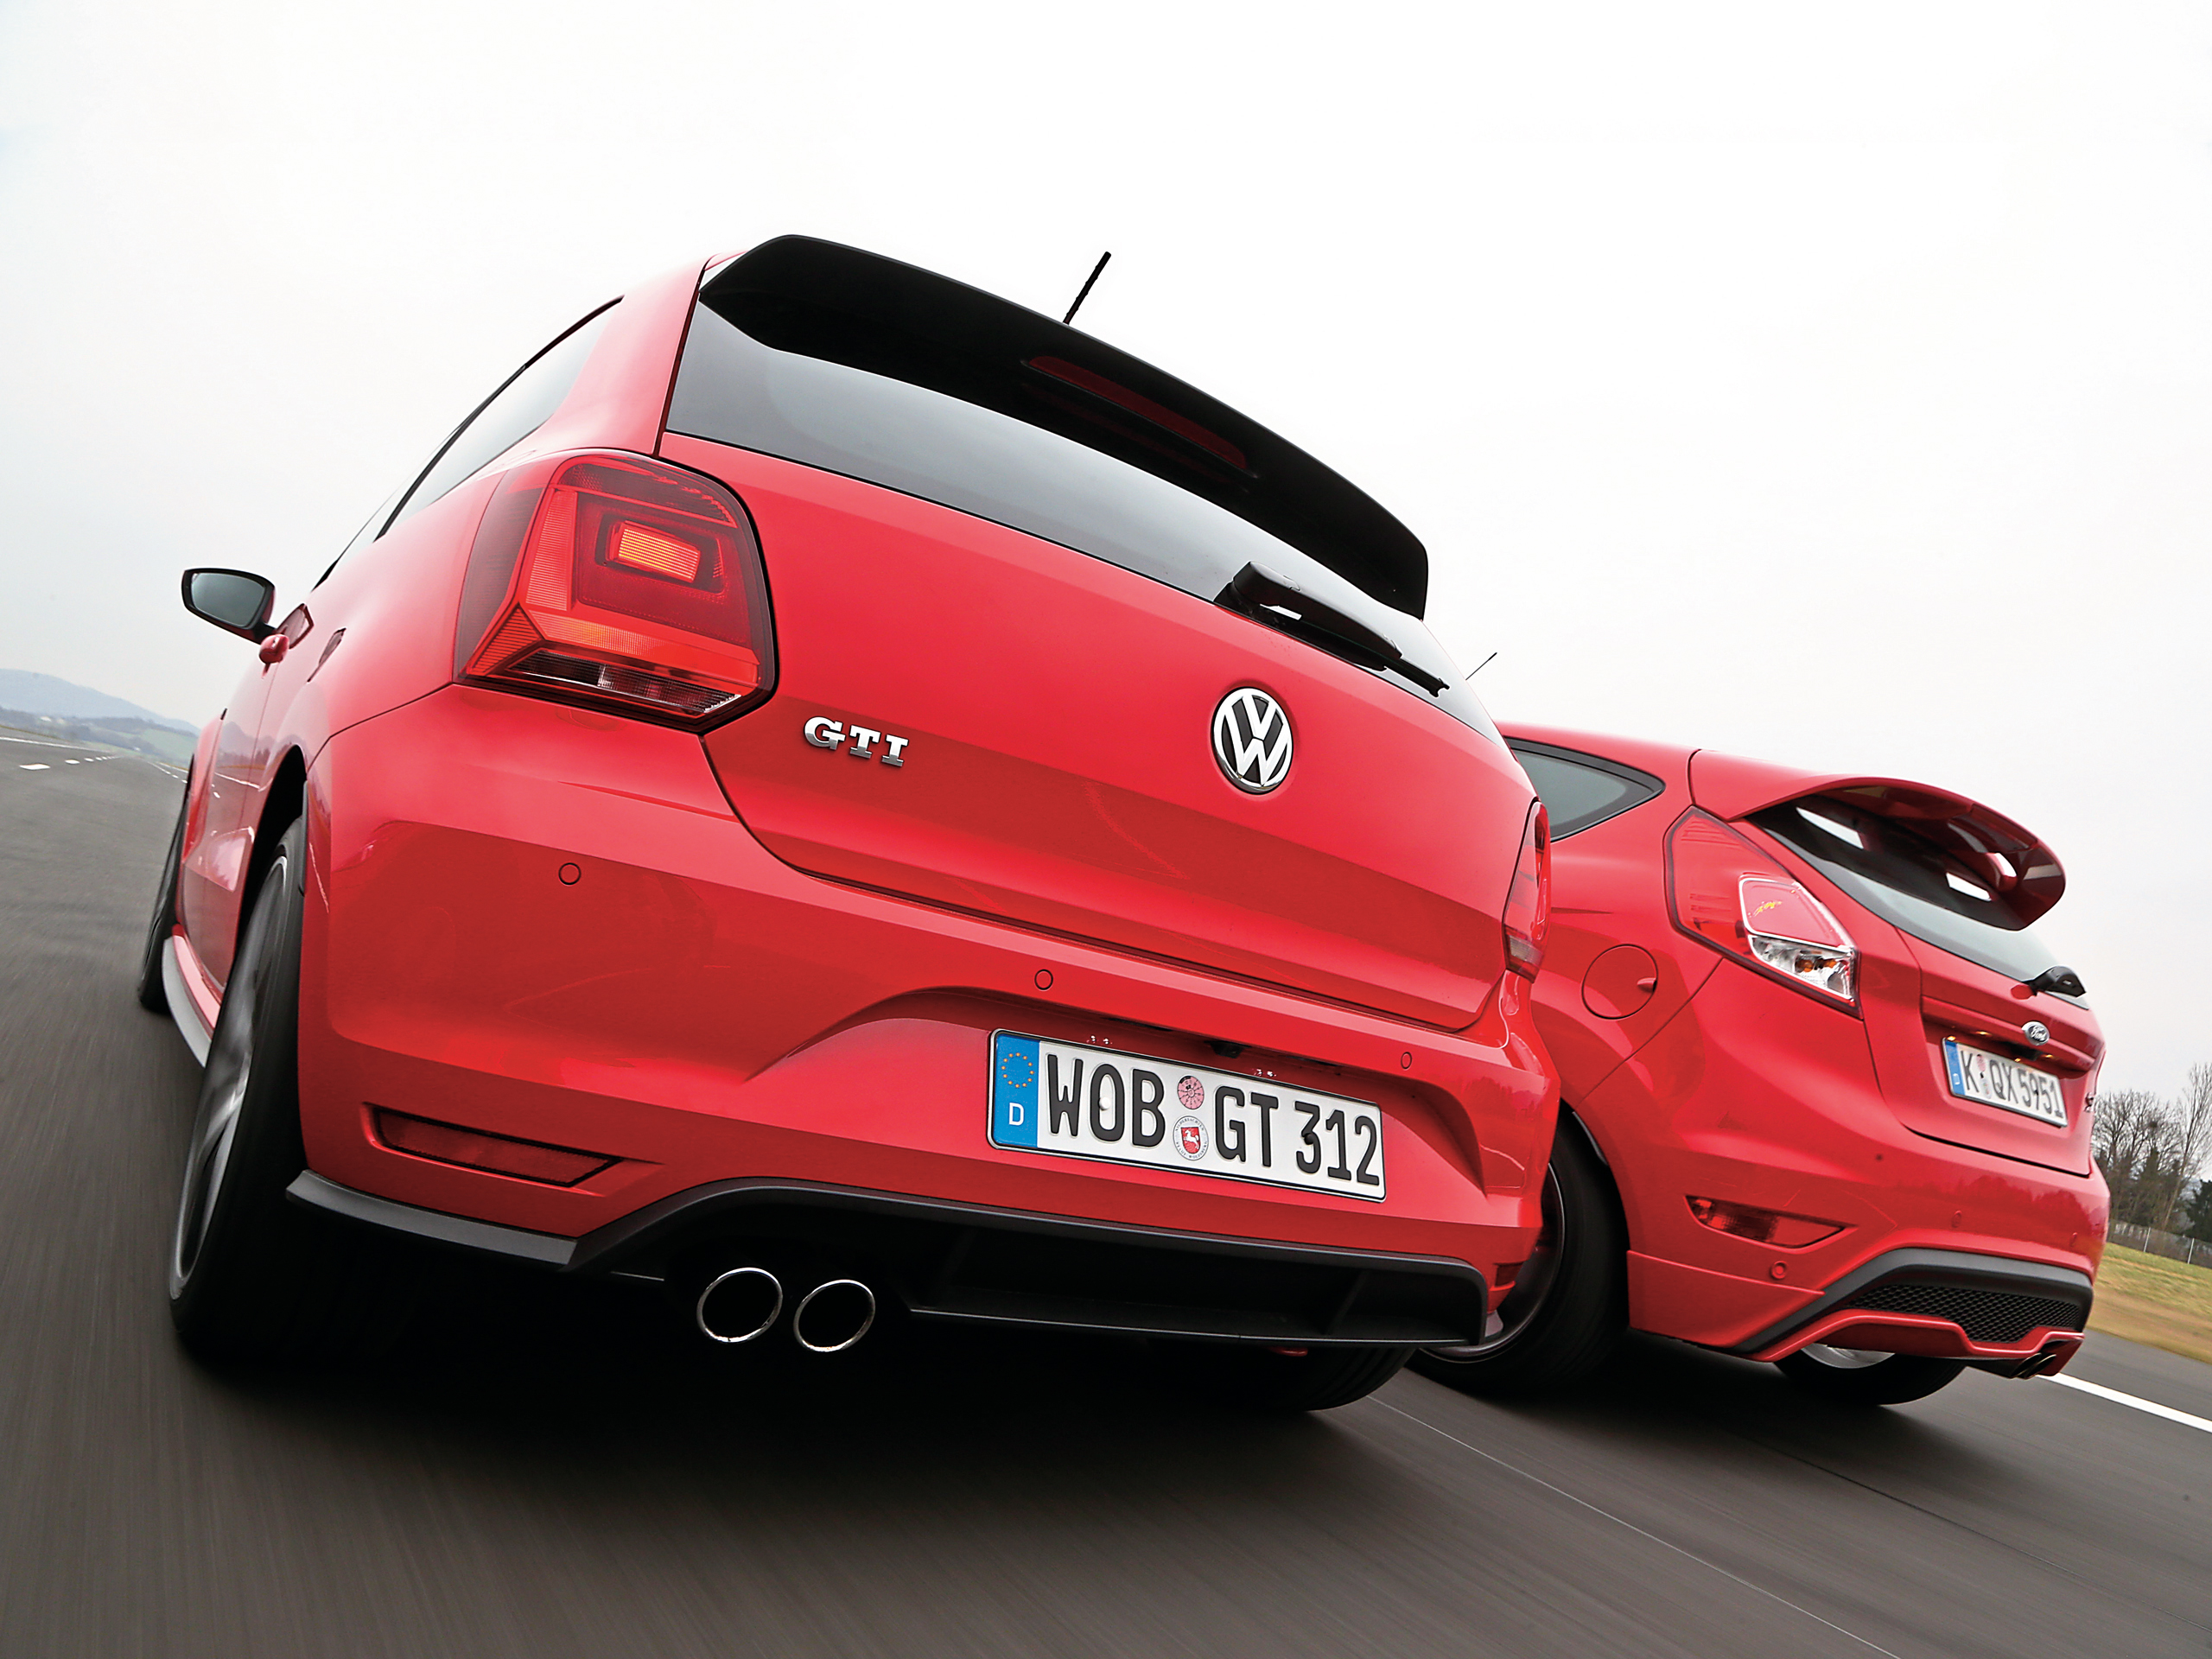 vw polo gti vs ford fiesta st im vergleich. Black Bedroom Furniture Sets. Home Design Ideas